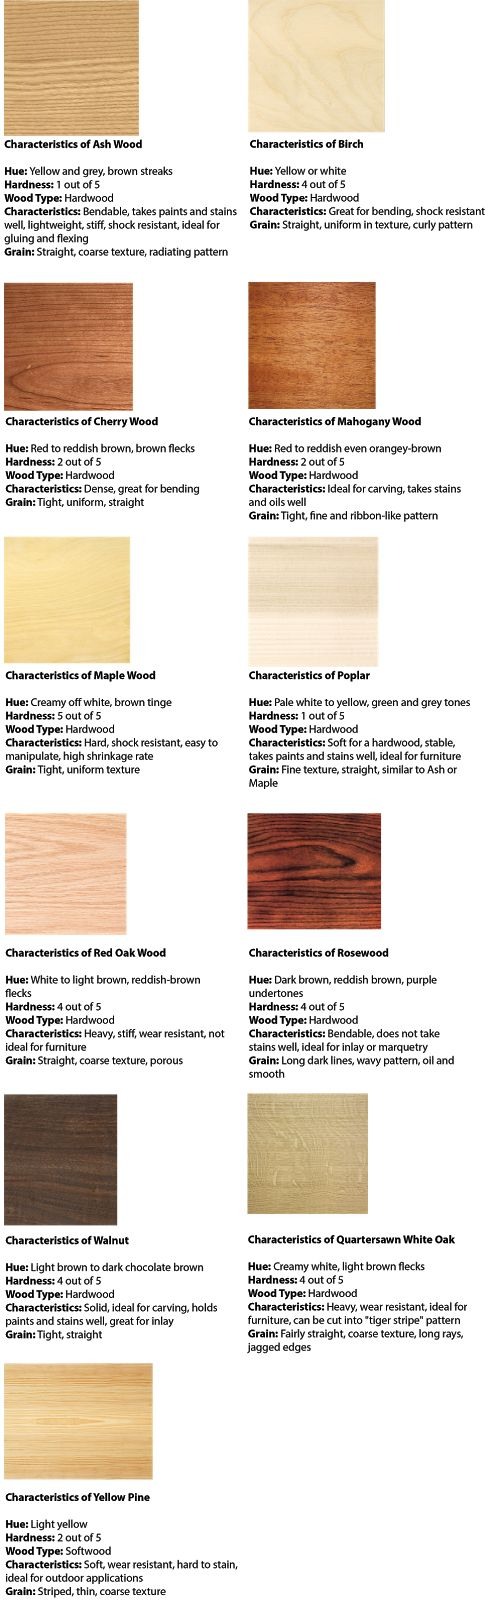 Best 25 Wood types ideas on Pinterest Types of wood